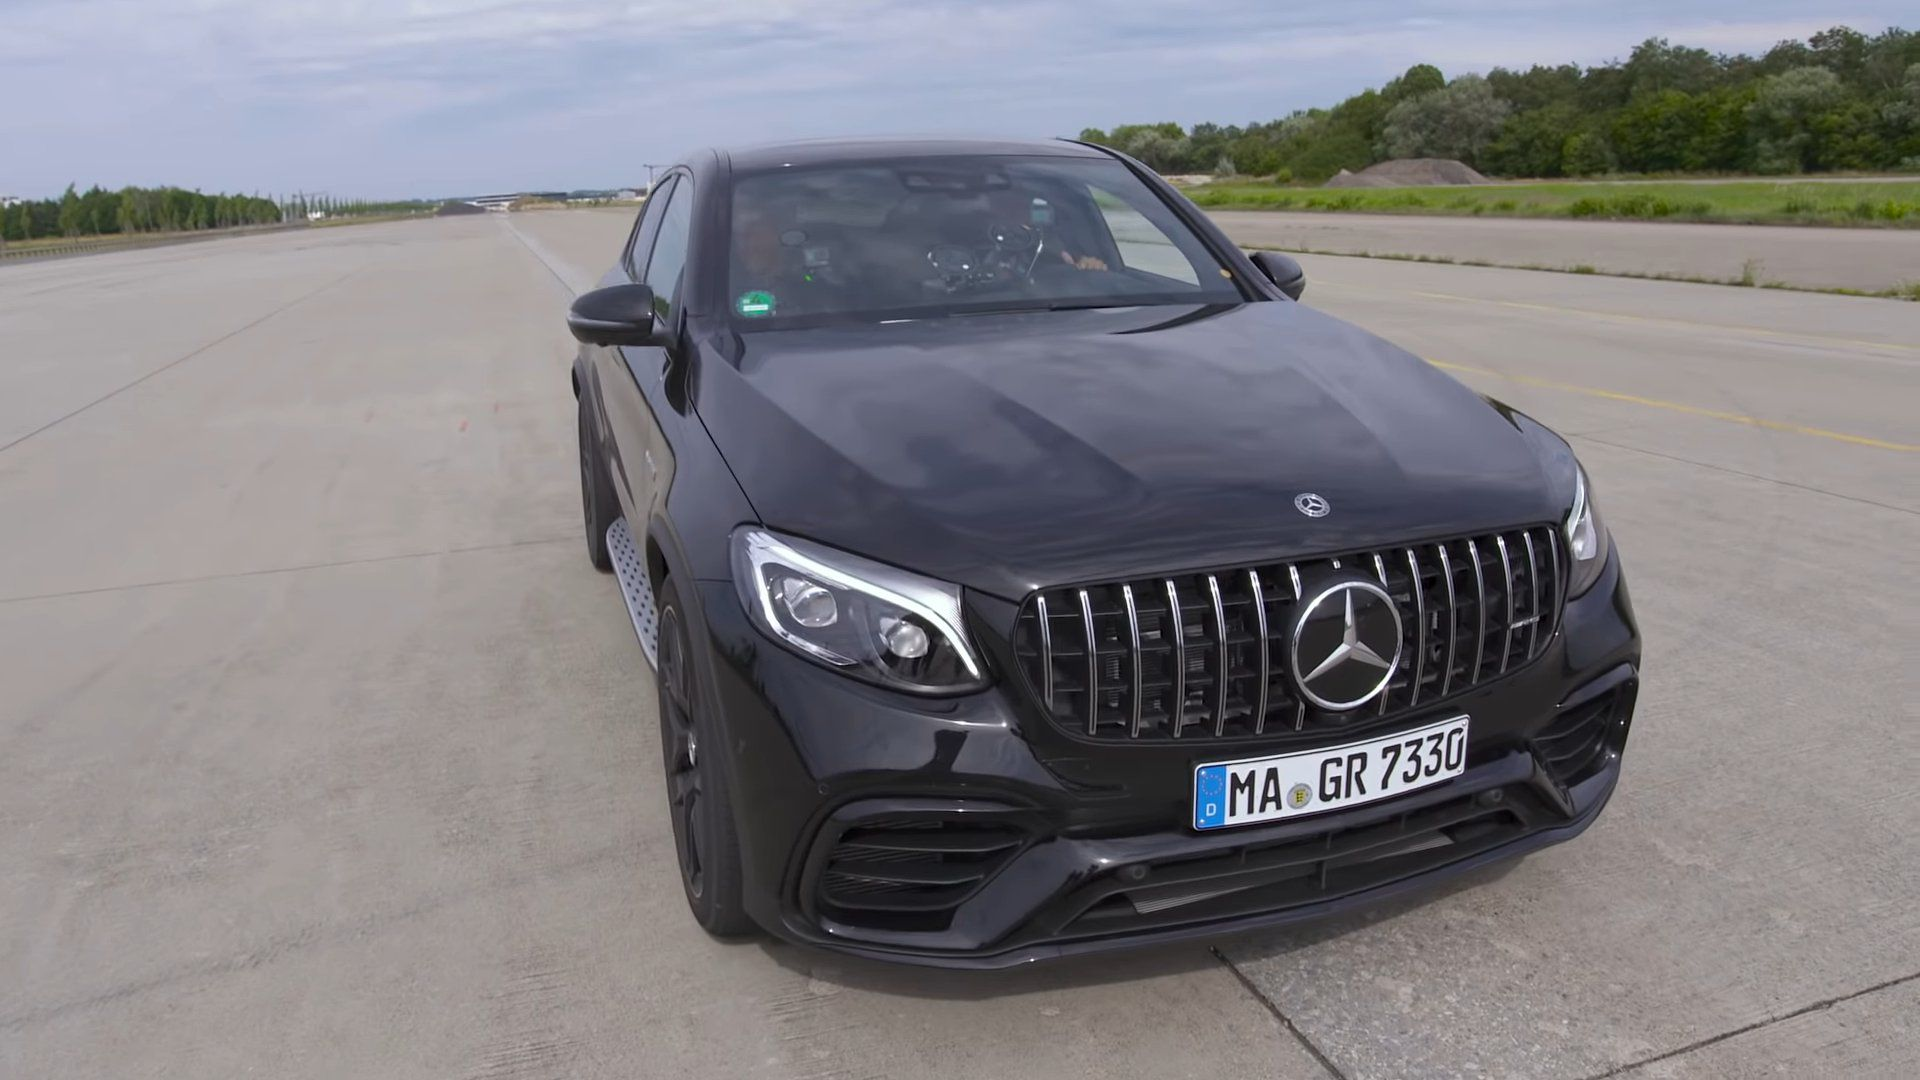 Mercedes-AMG GLC 63 S - in black colour